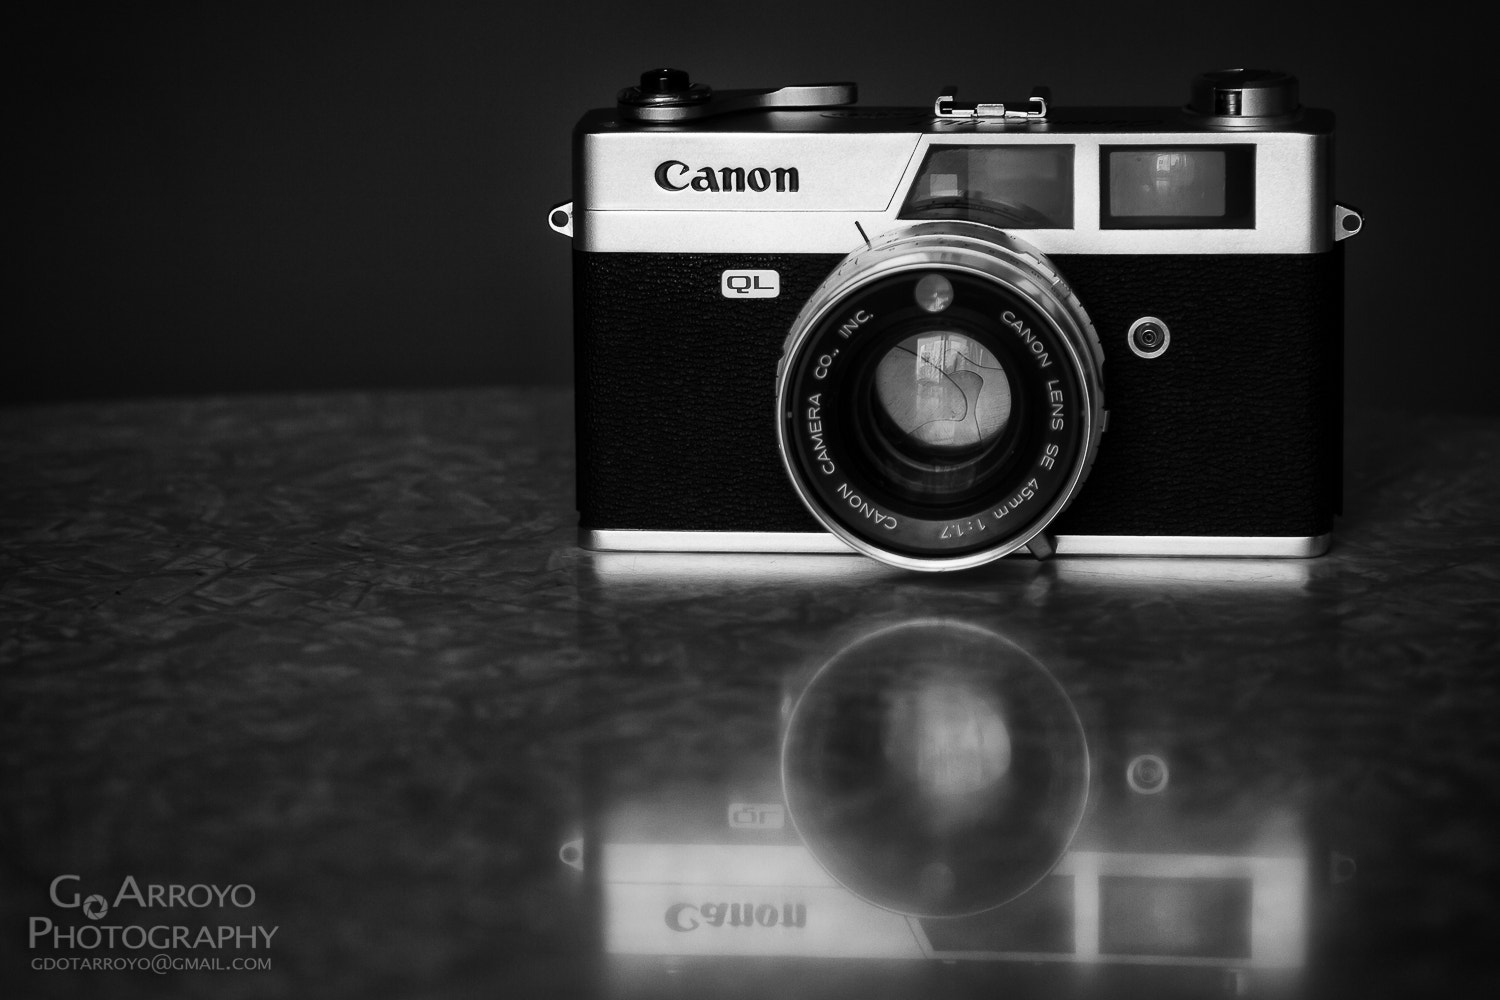 Photograph Canon Canonet QL17 by Giovanni Arroyo on 500px